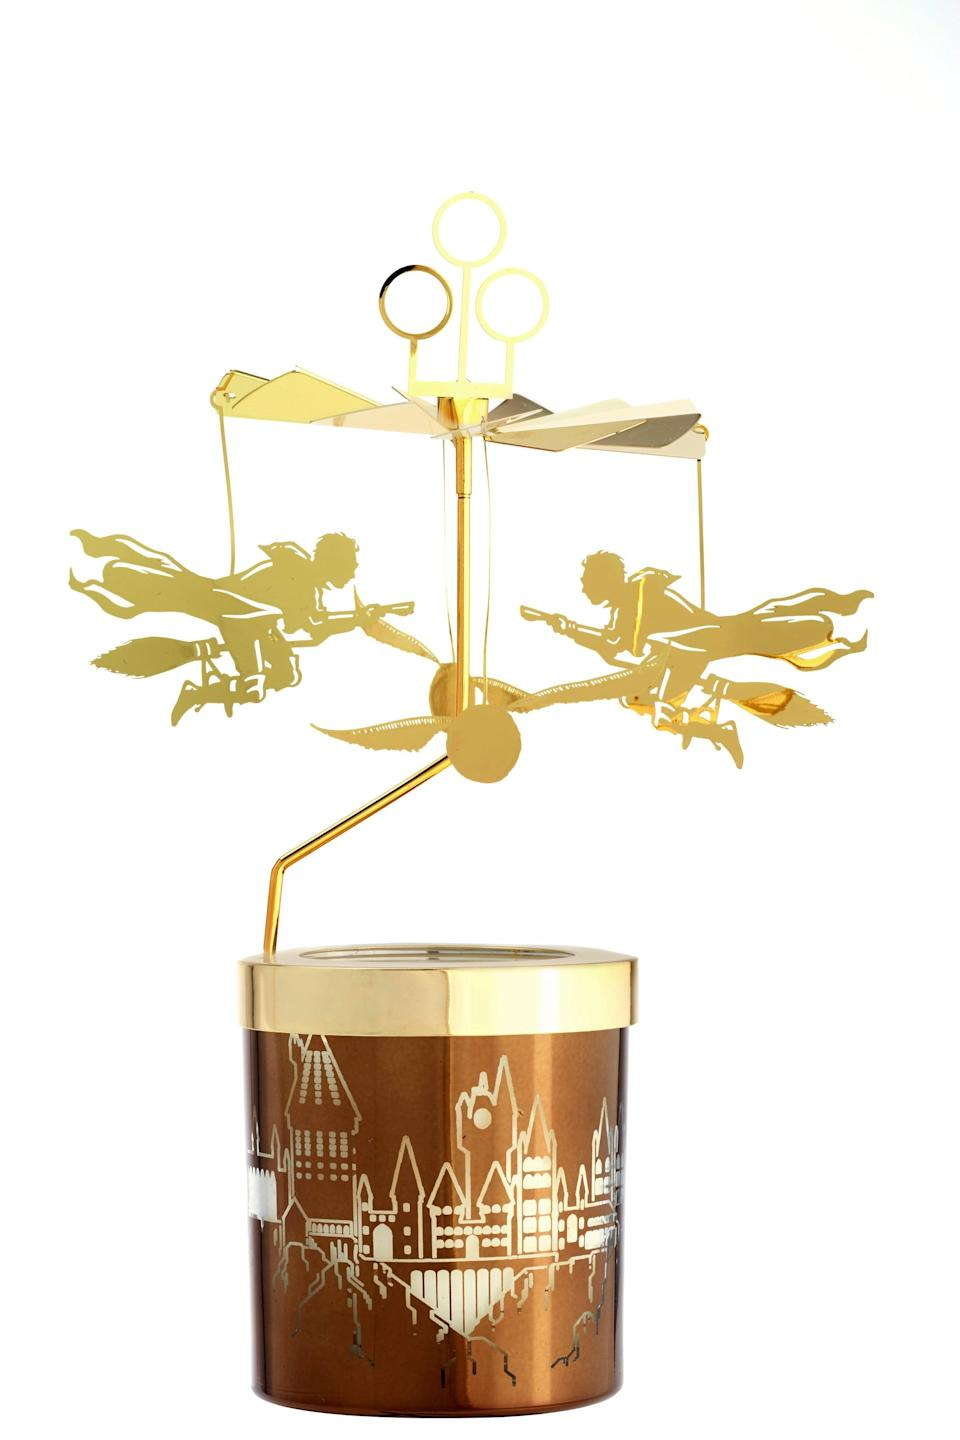 """<p>This whimsical <a rel=""""nofollow noopener"""" href=""""https://www.popsugar.com/buy/Candle-Pot-Carousel-362144?p_name=Candle%20Pot%20Carousel&retailer=potterybarn.com&price=40&evar1=moms%3Aus&evar9=45219298&evar98=https%3A%2F%2Fwww.popsugar.com%2Fmoms%2Fphoto-gallery%2F45219298%2Fimage%2F45219326%2FCandle-Pot-Carousel&list1=home%20decor%2Charry%20potter%2Cpottery%20barn%2Charry%20potter%20home%20decor%2Charry%20potter%20home%2Chome%20shopping&prop13=desktop&pdata=1"""" target=""""_blank"""" data-ylk=""""slk:Candle Pot Carousel"""" class=""""link rapid-noclick-resp"""">Candle Pot Carousel</a> ($40) adds a golden touch to any candle pot top.</p>"""